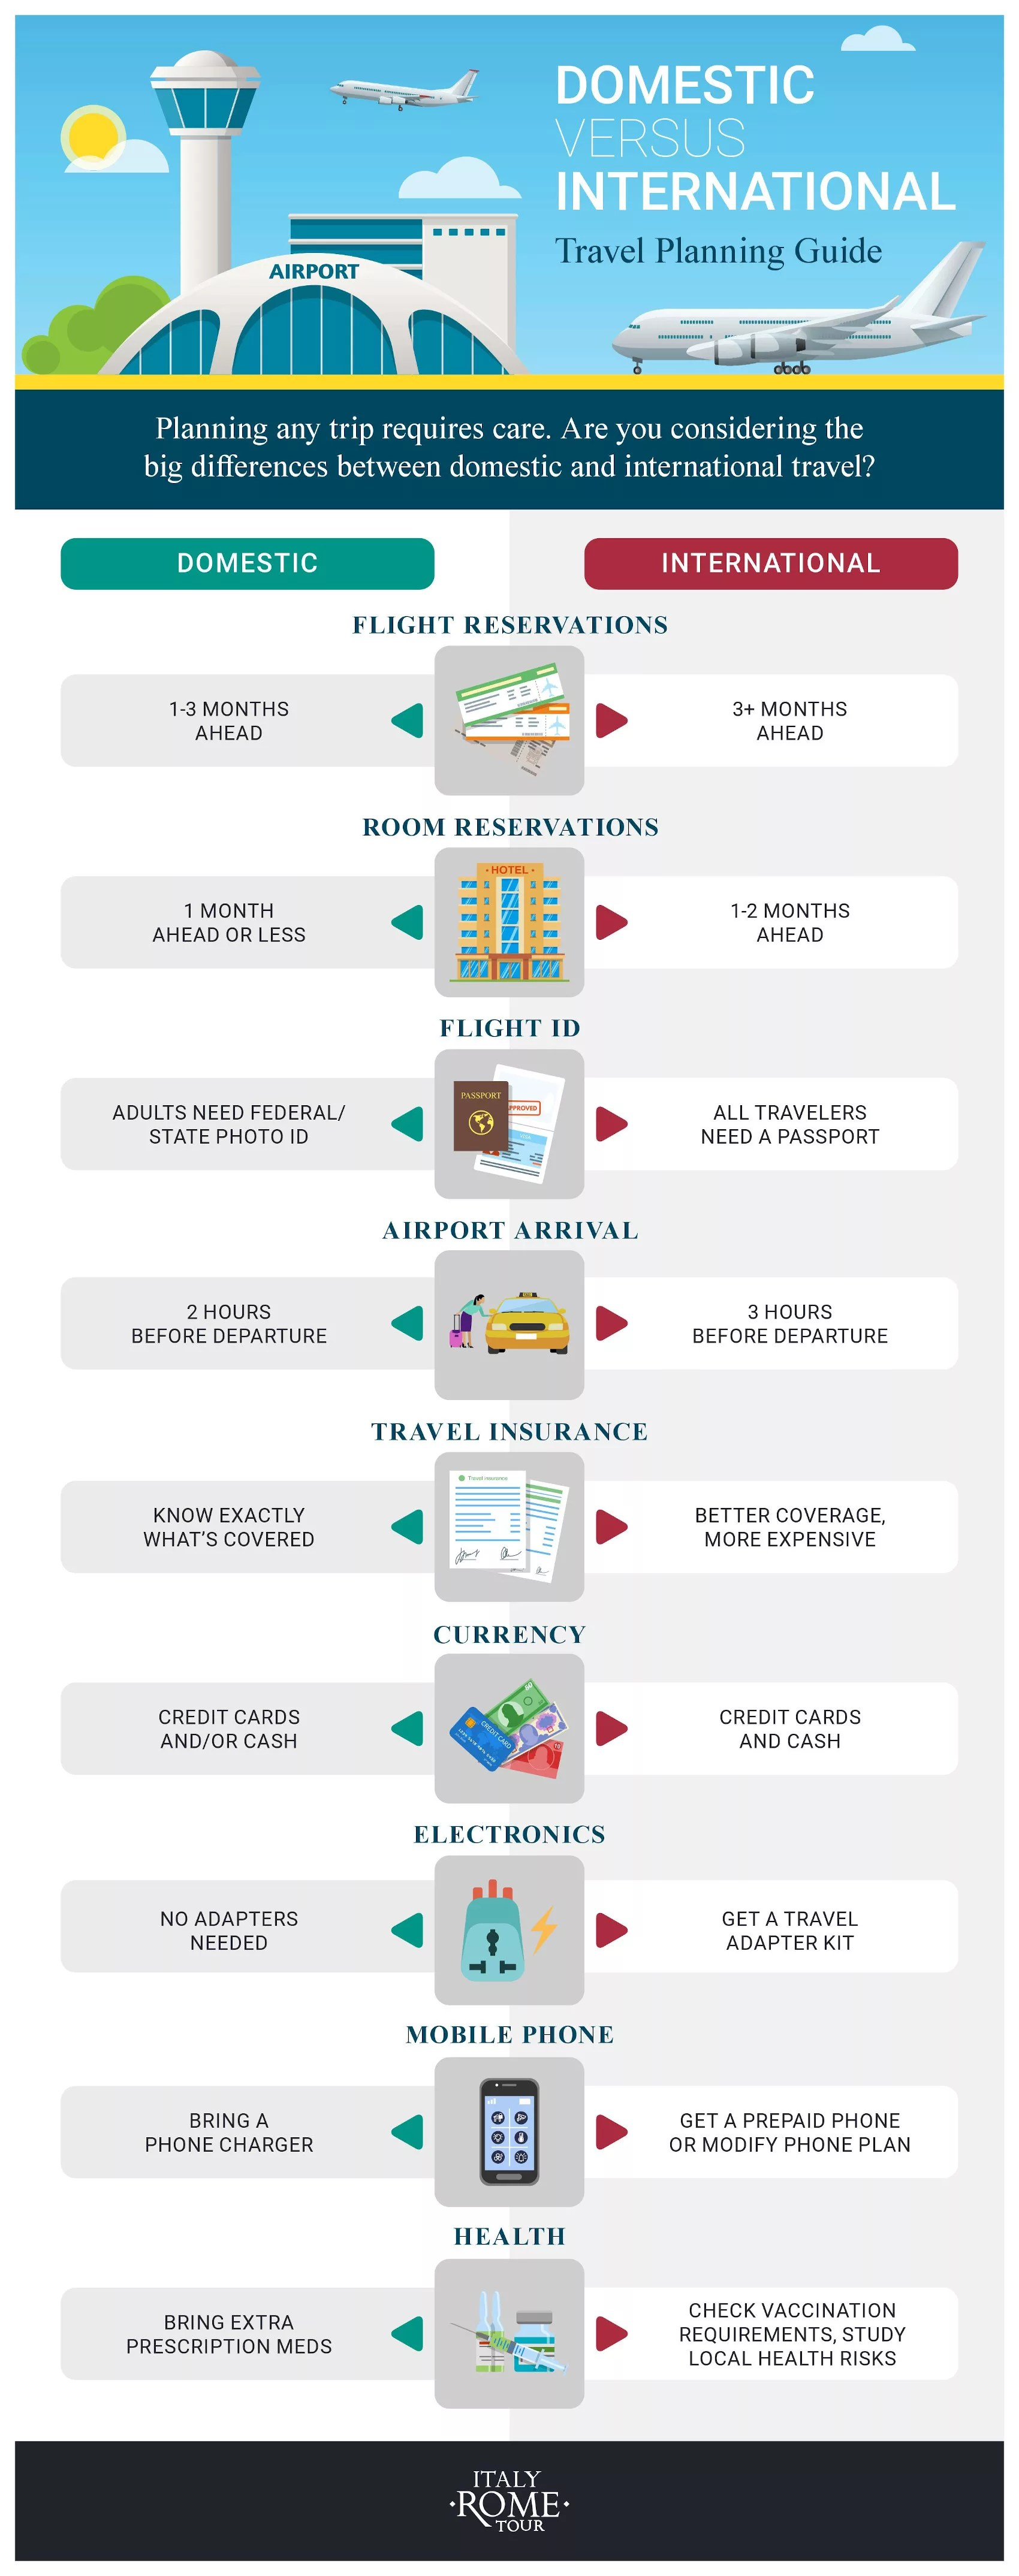 Difference Between Domestic And International : difference, between, domestic, international, Domestic, International, Travel, Earth's, Attractions, Guides, Locals,, Itineraries,, Tips,